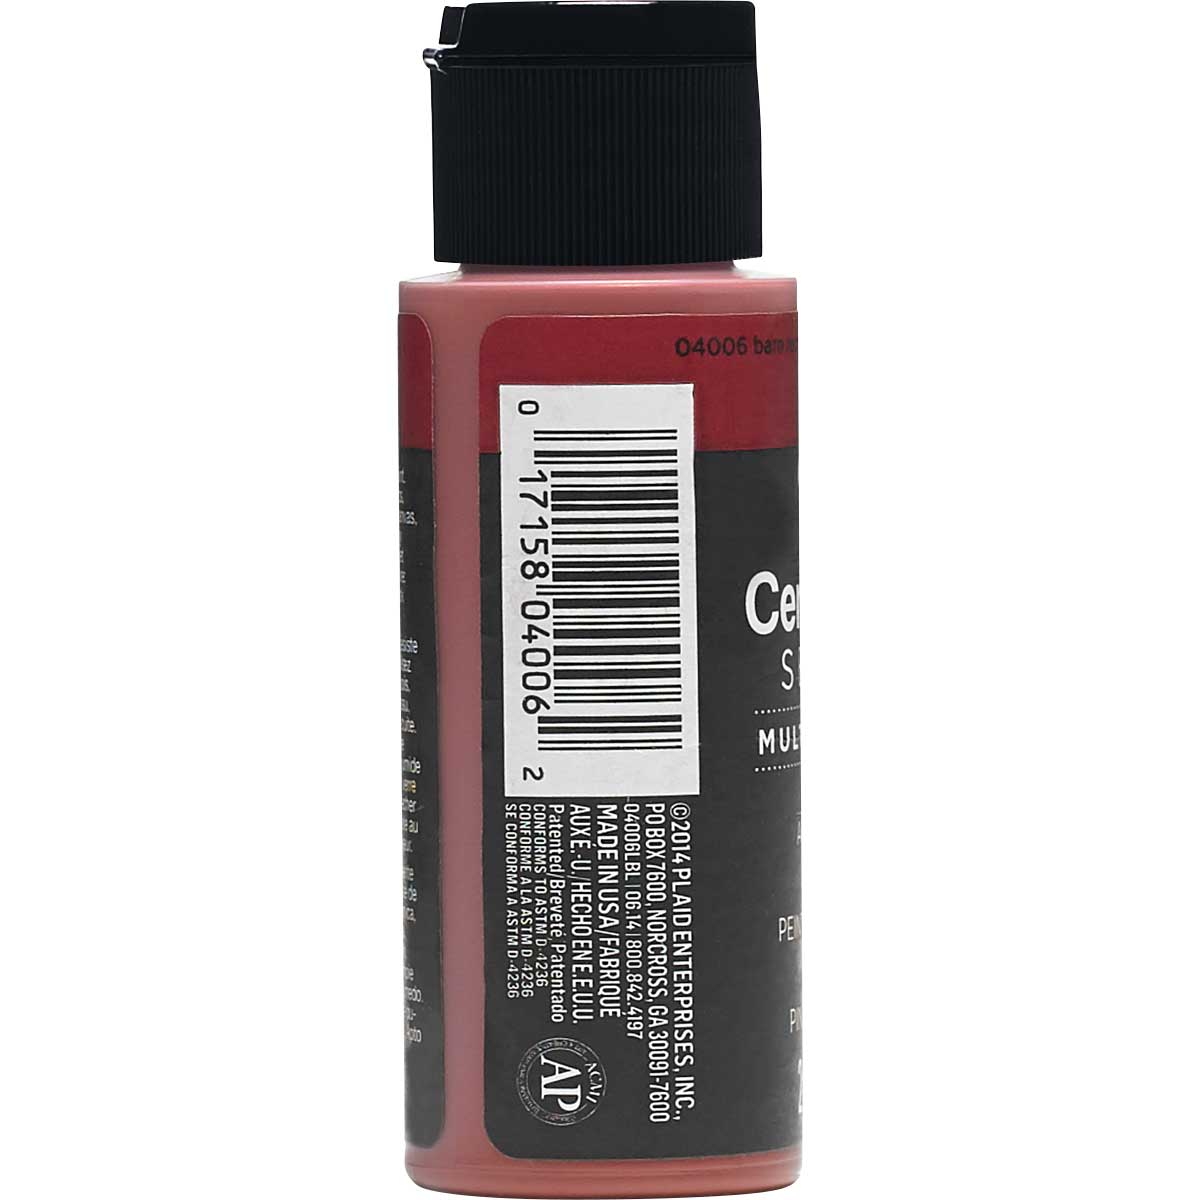 Delta Ceramcoat ® Select Multi-Surface Acrylic Paint - Satin - Barn Red, 2 oz. - 04006